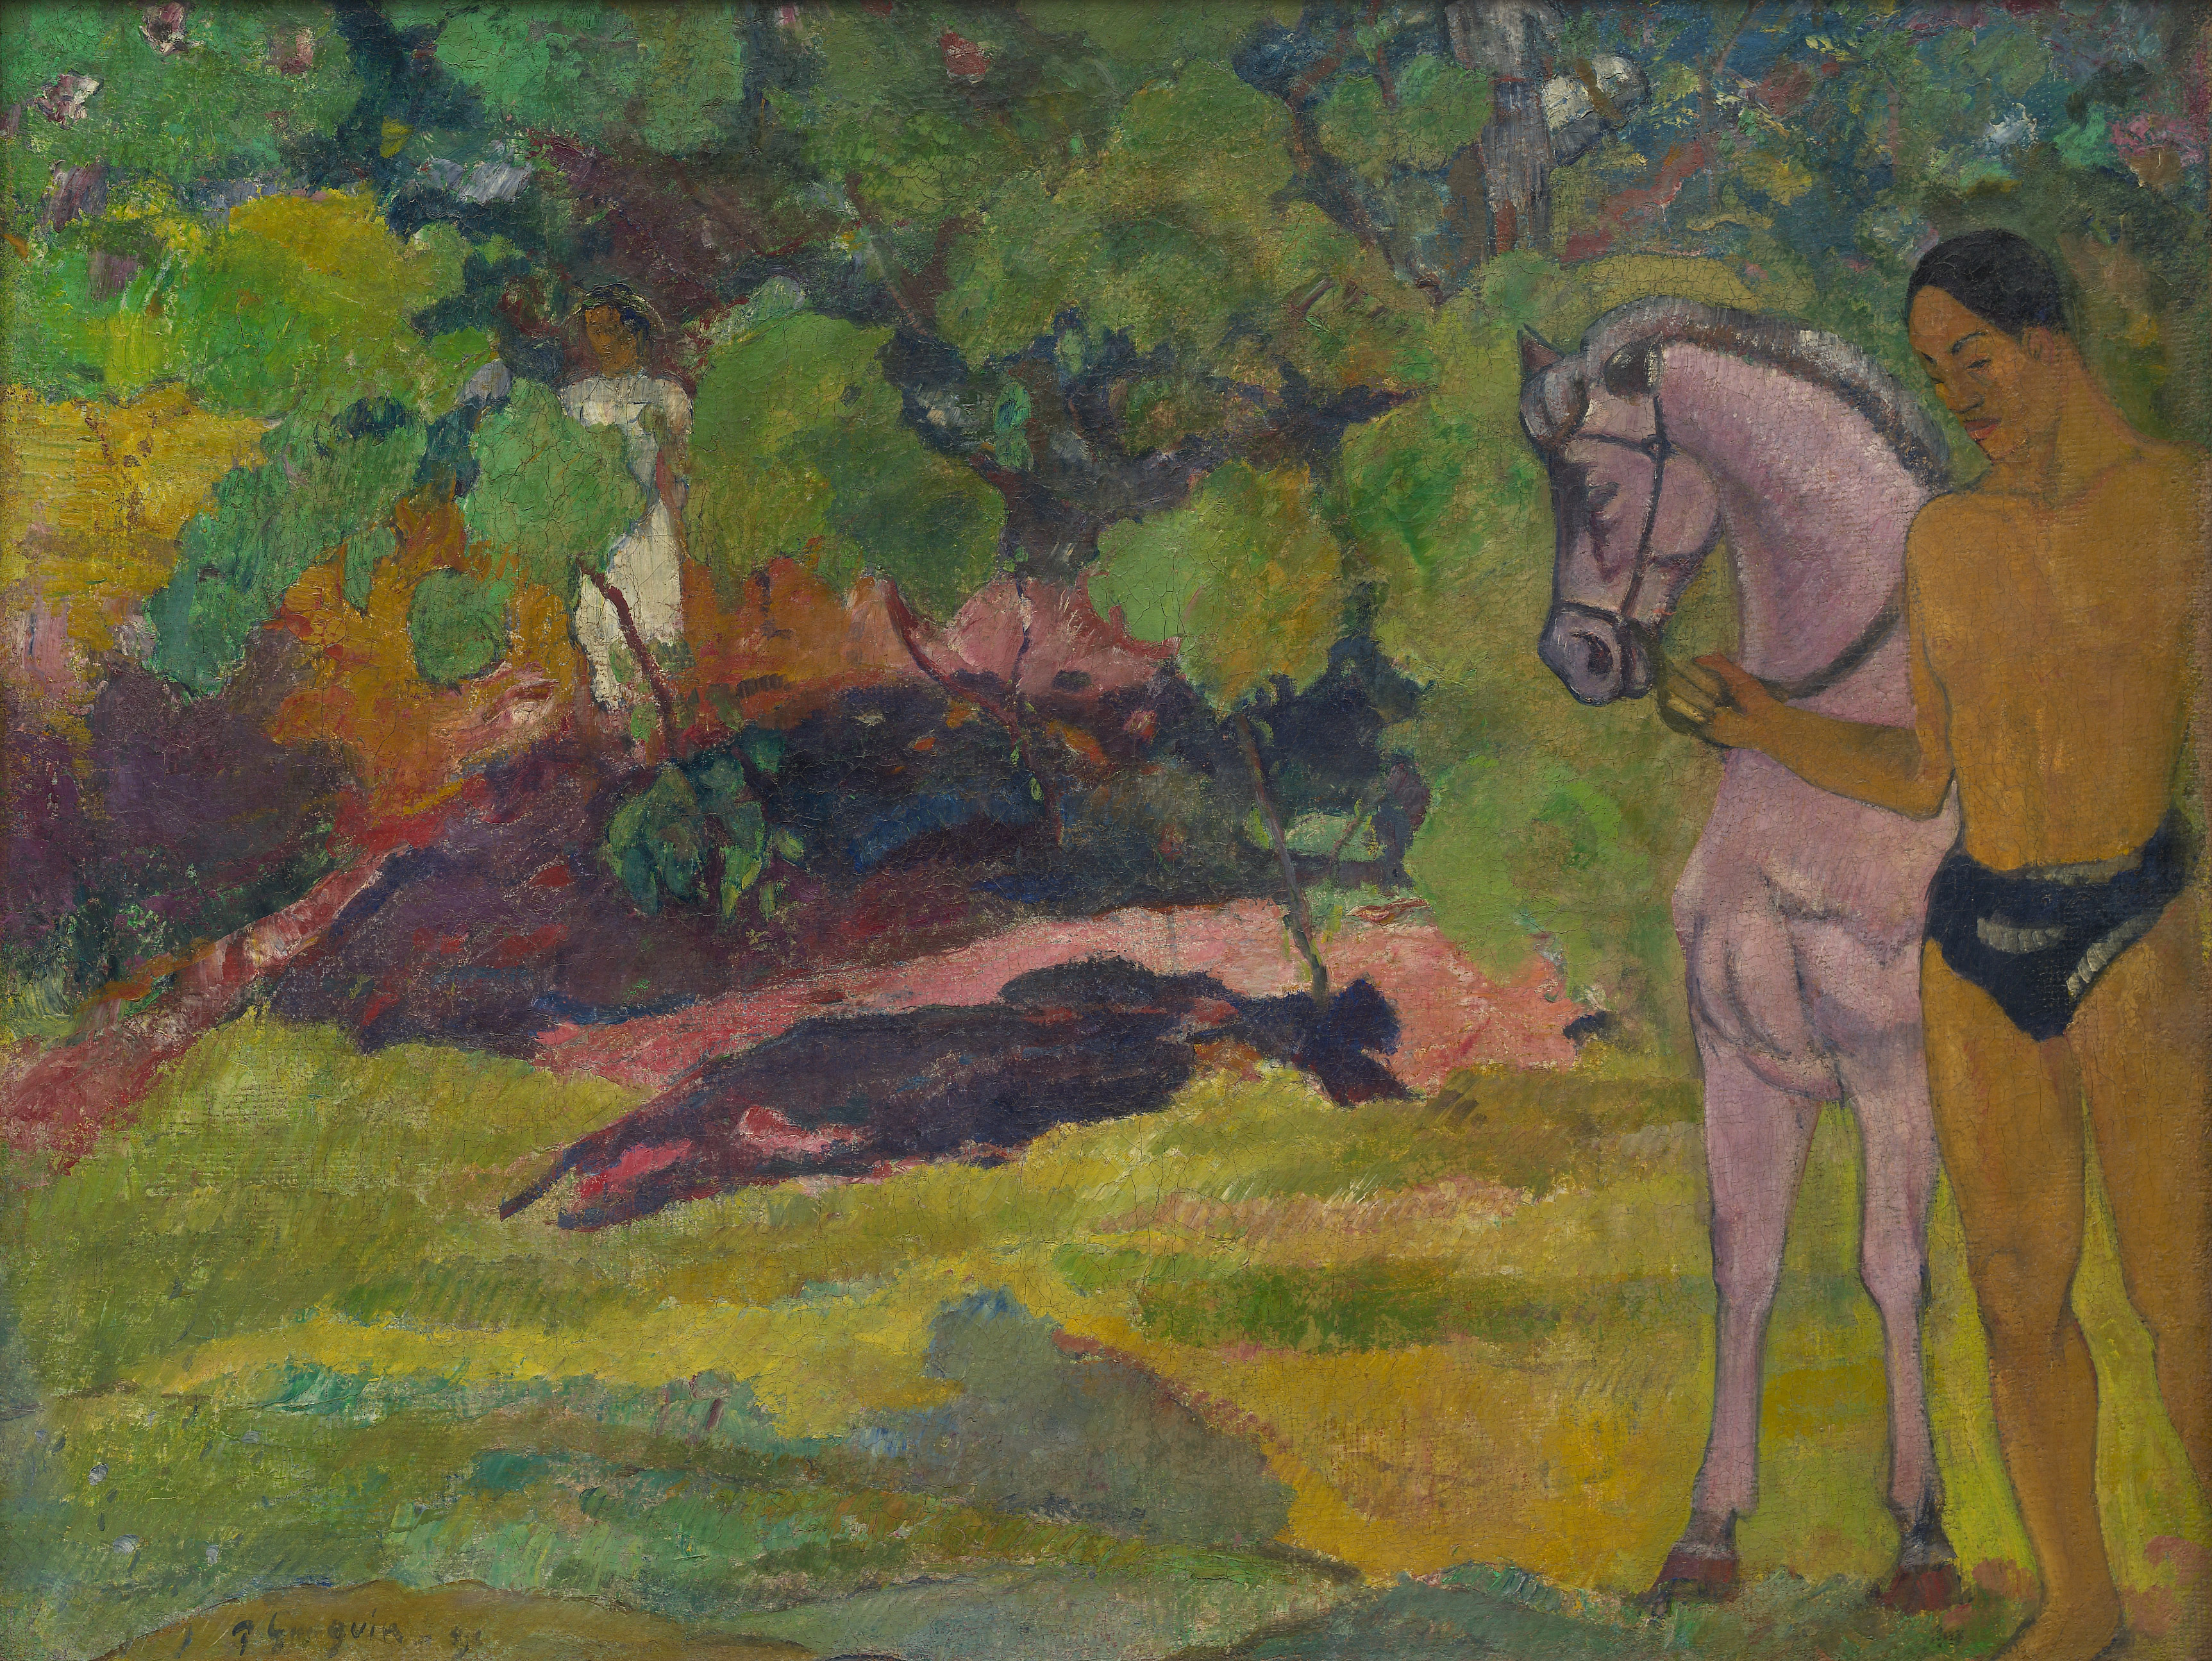 In the Vanilla Grove, Man and Horse